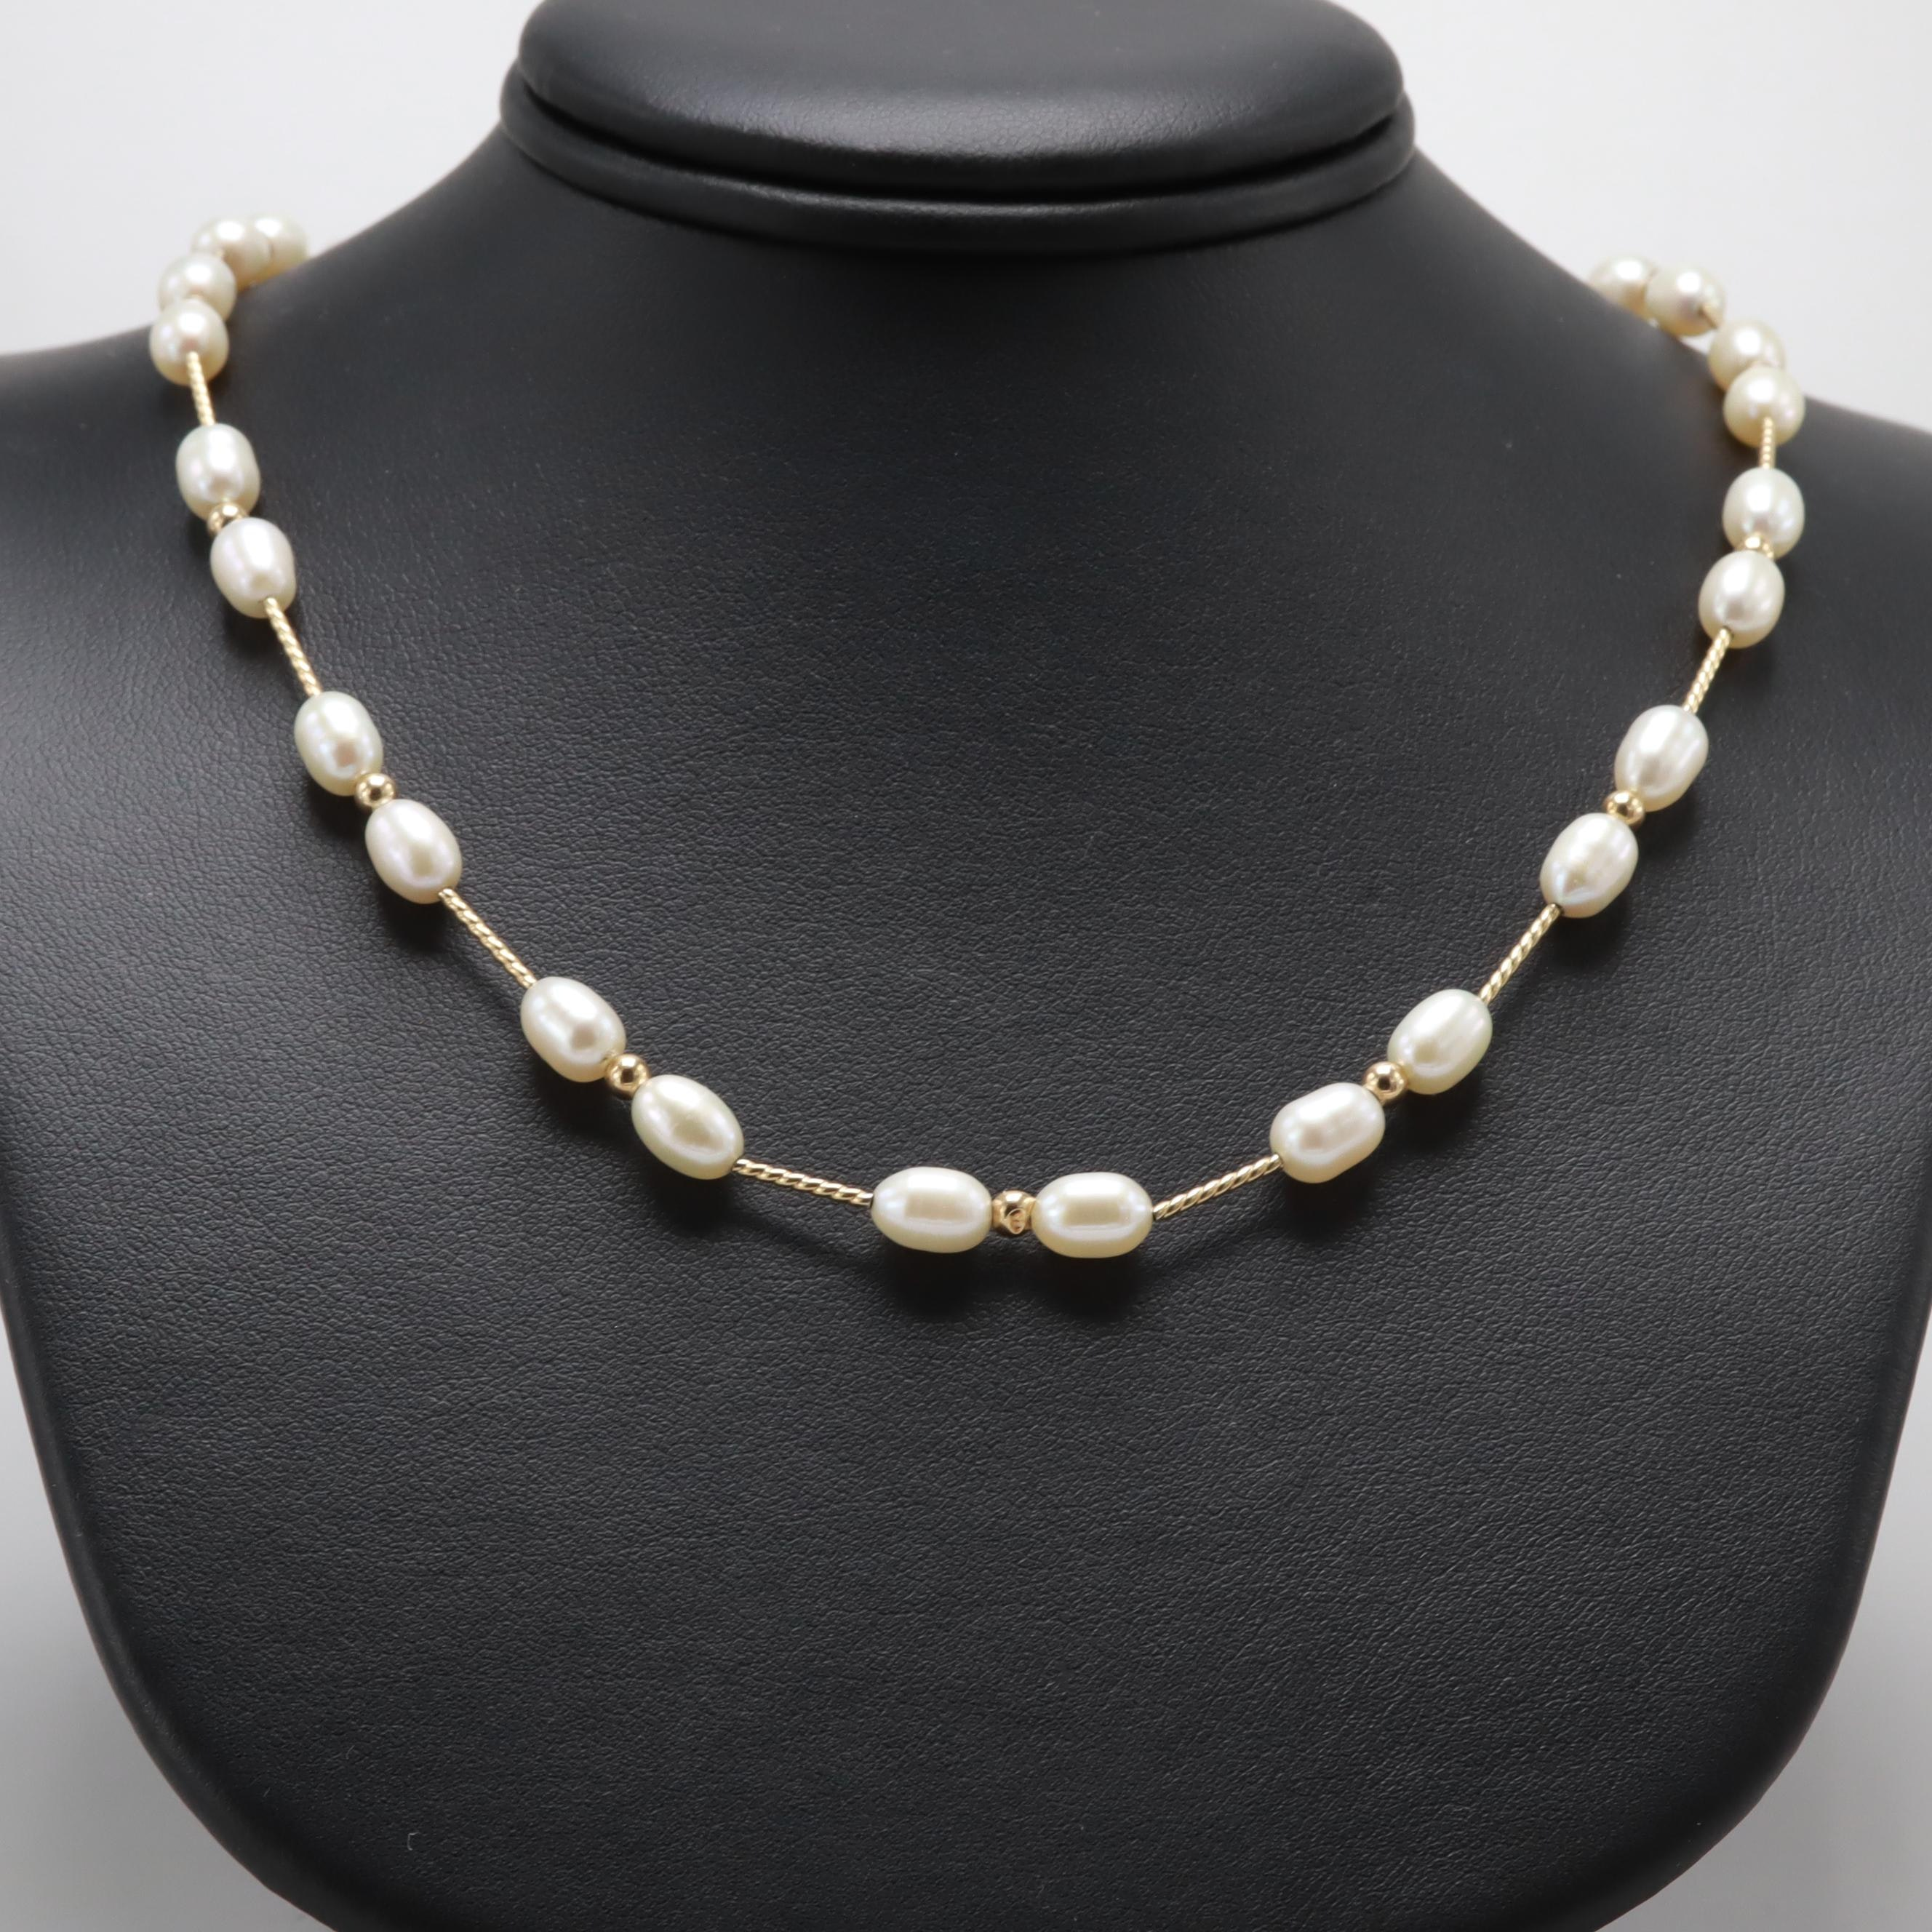 14K Yellow Gold Cultured Pearl and Gold Bead Necklace